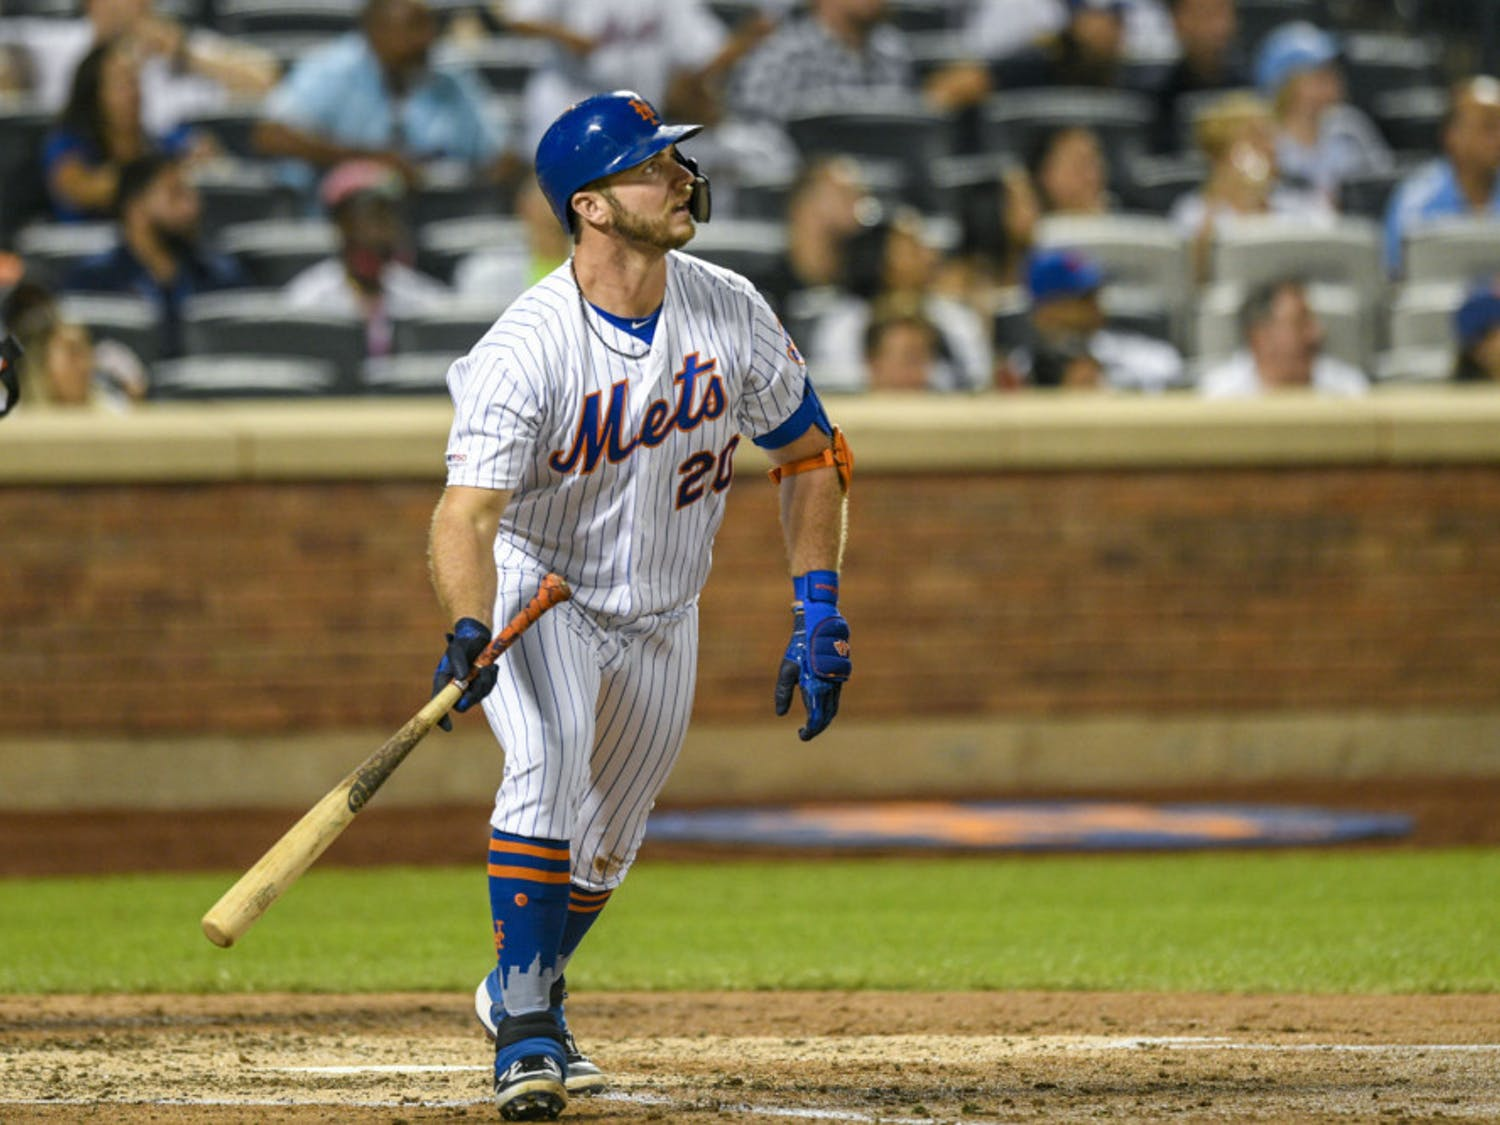 Pete Alonso leads all rookies with 34 home runs and 77 RBIs.